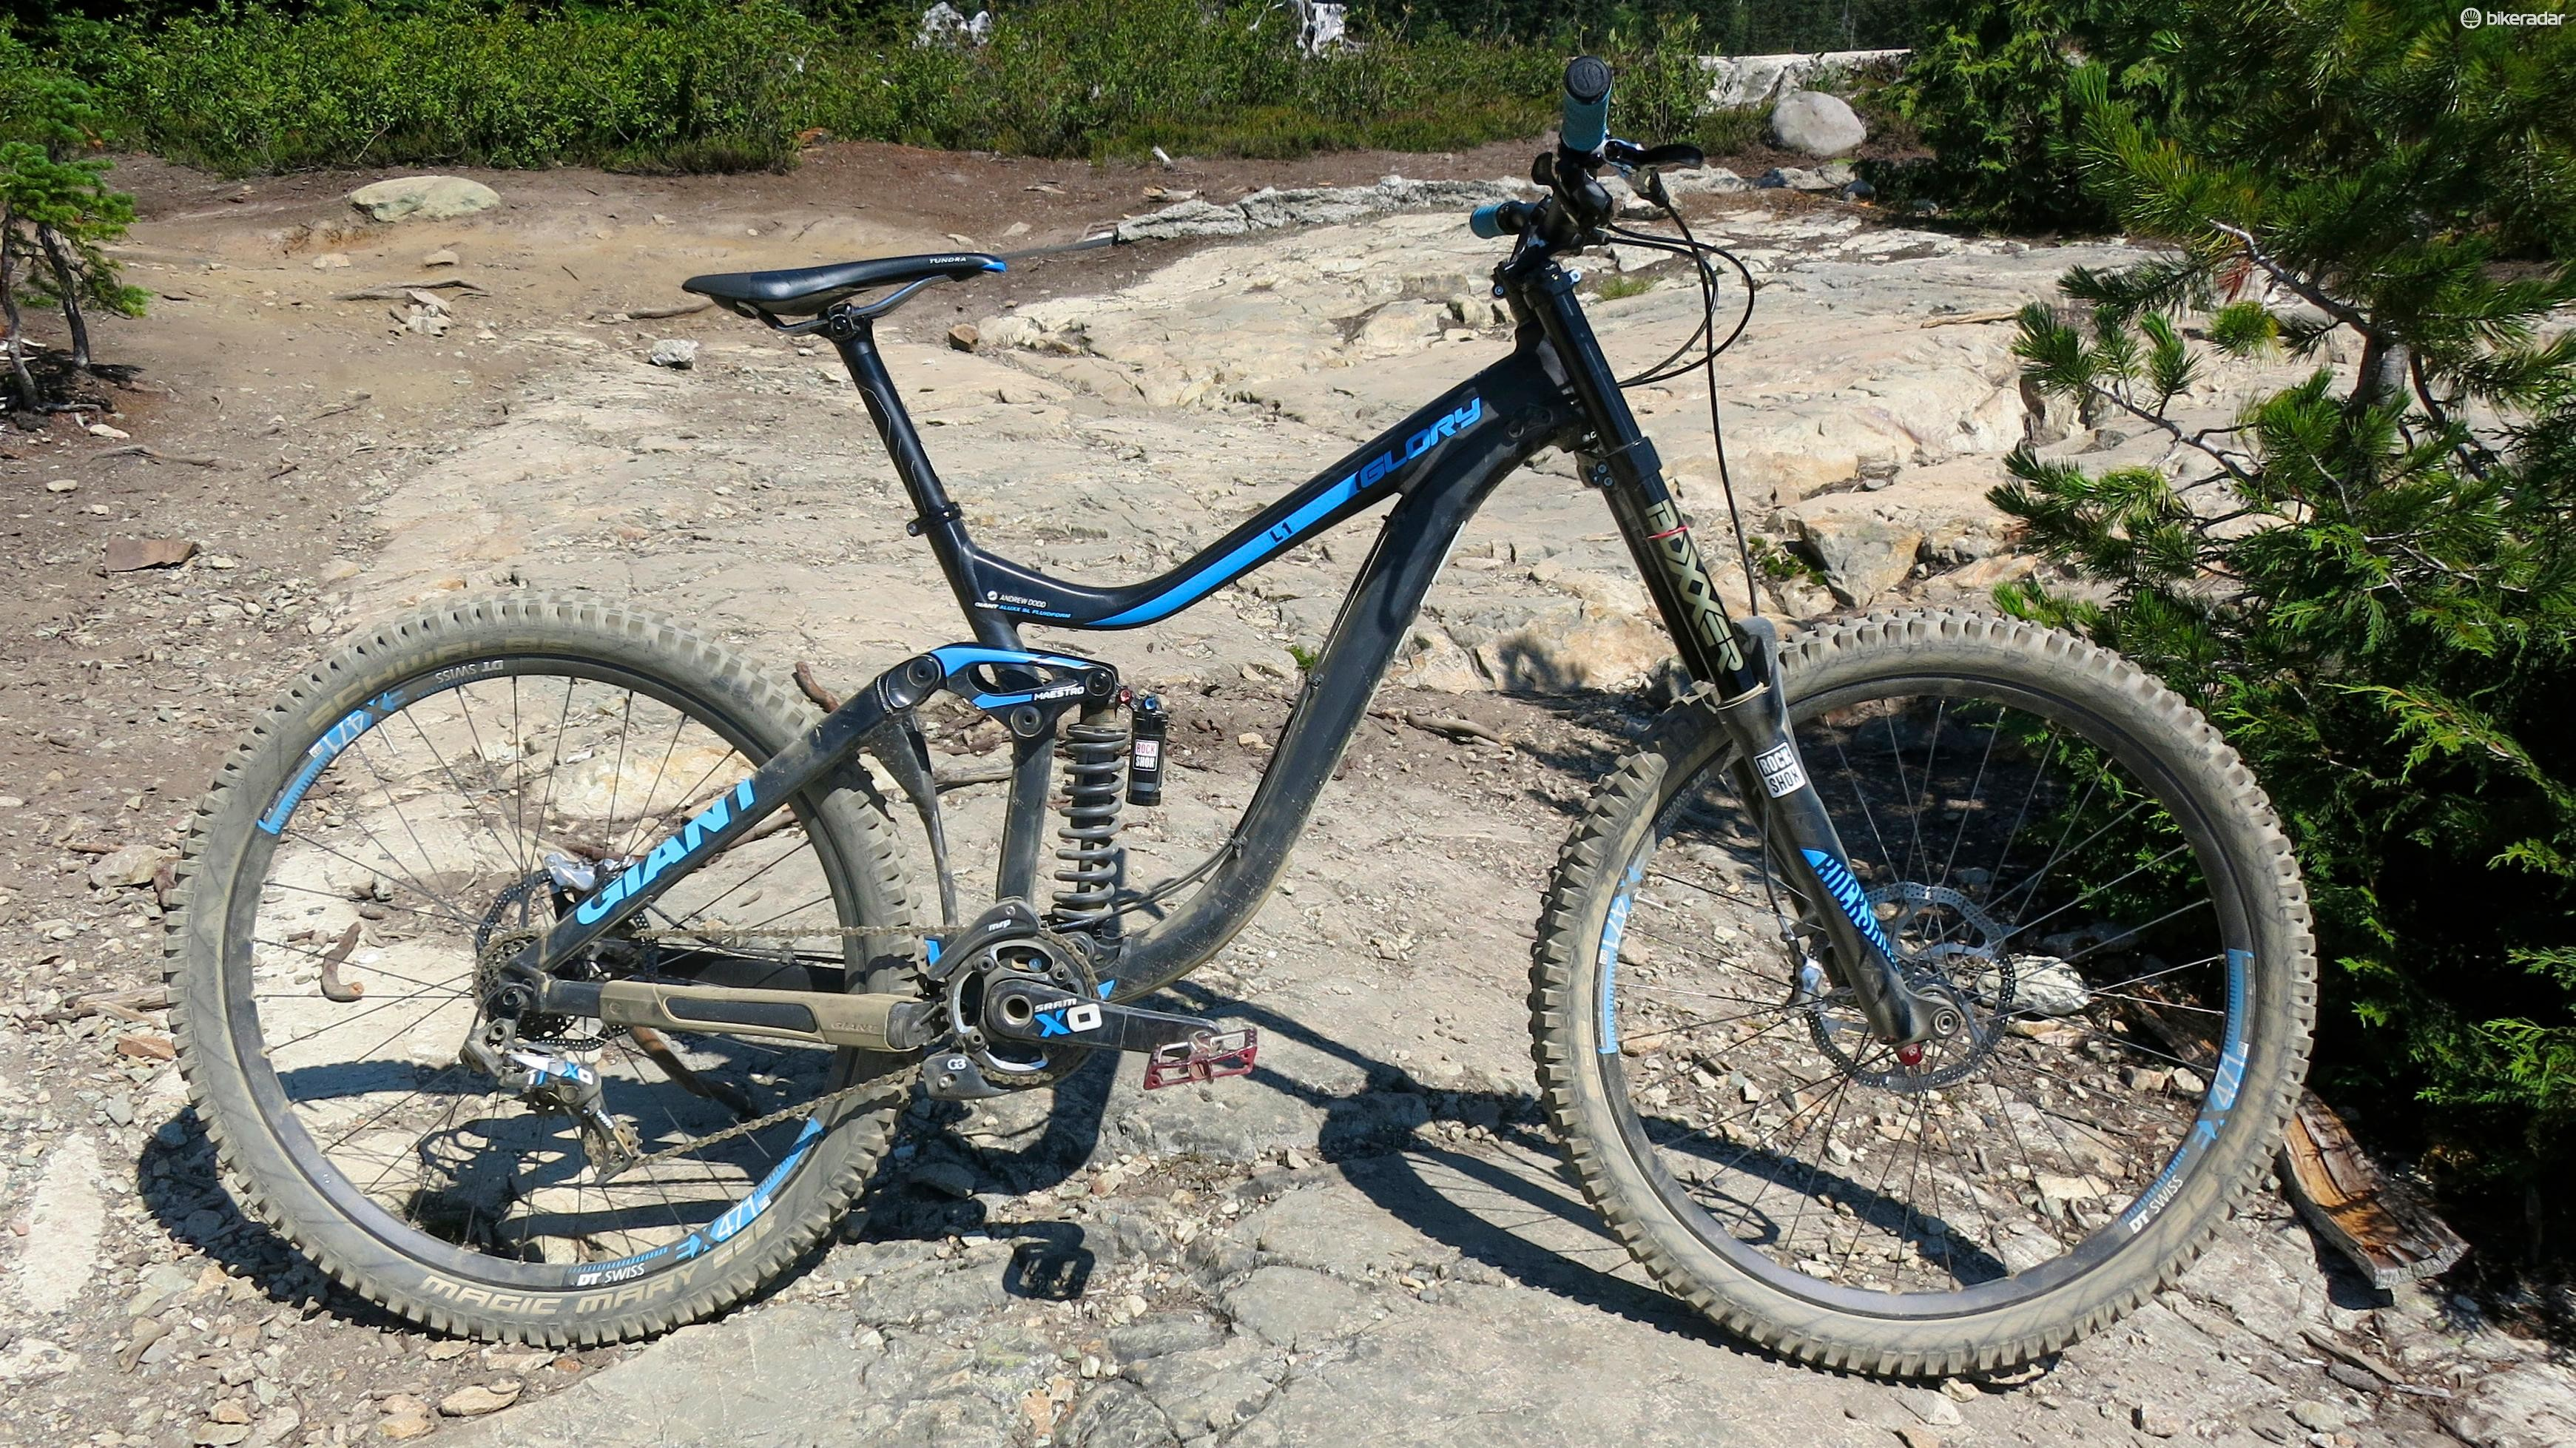 Our size large Giant Glory 27.5 0 test bike